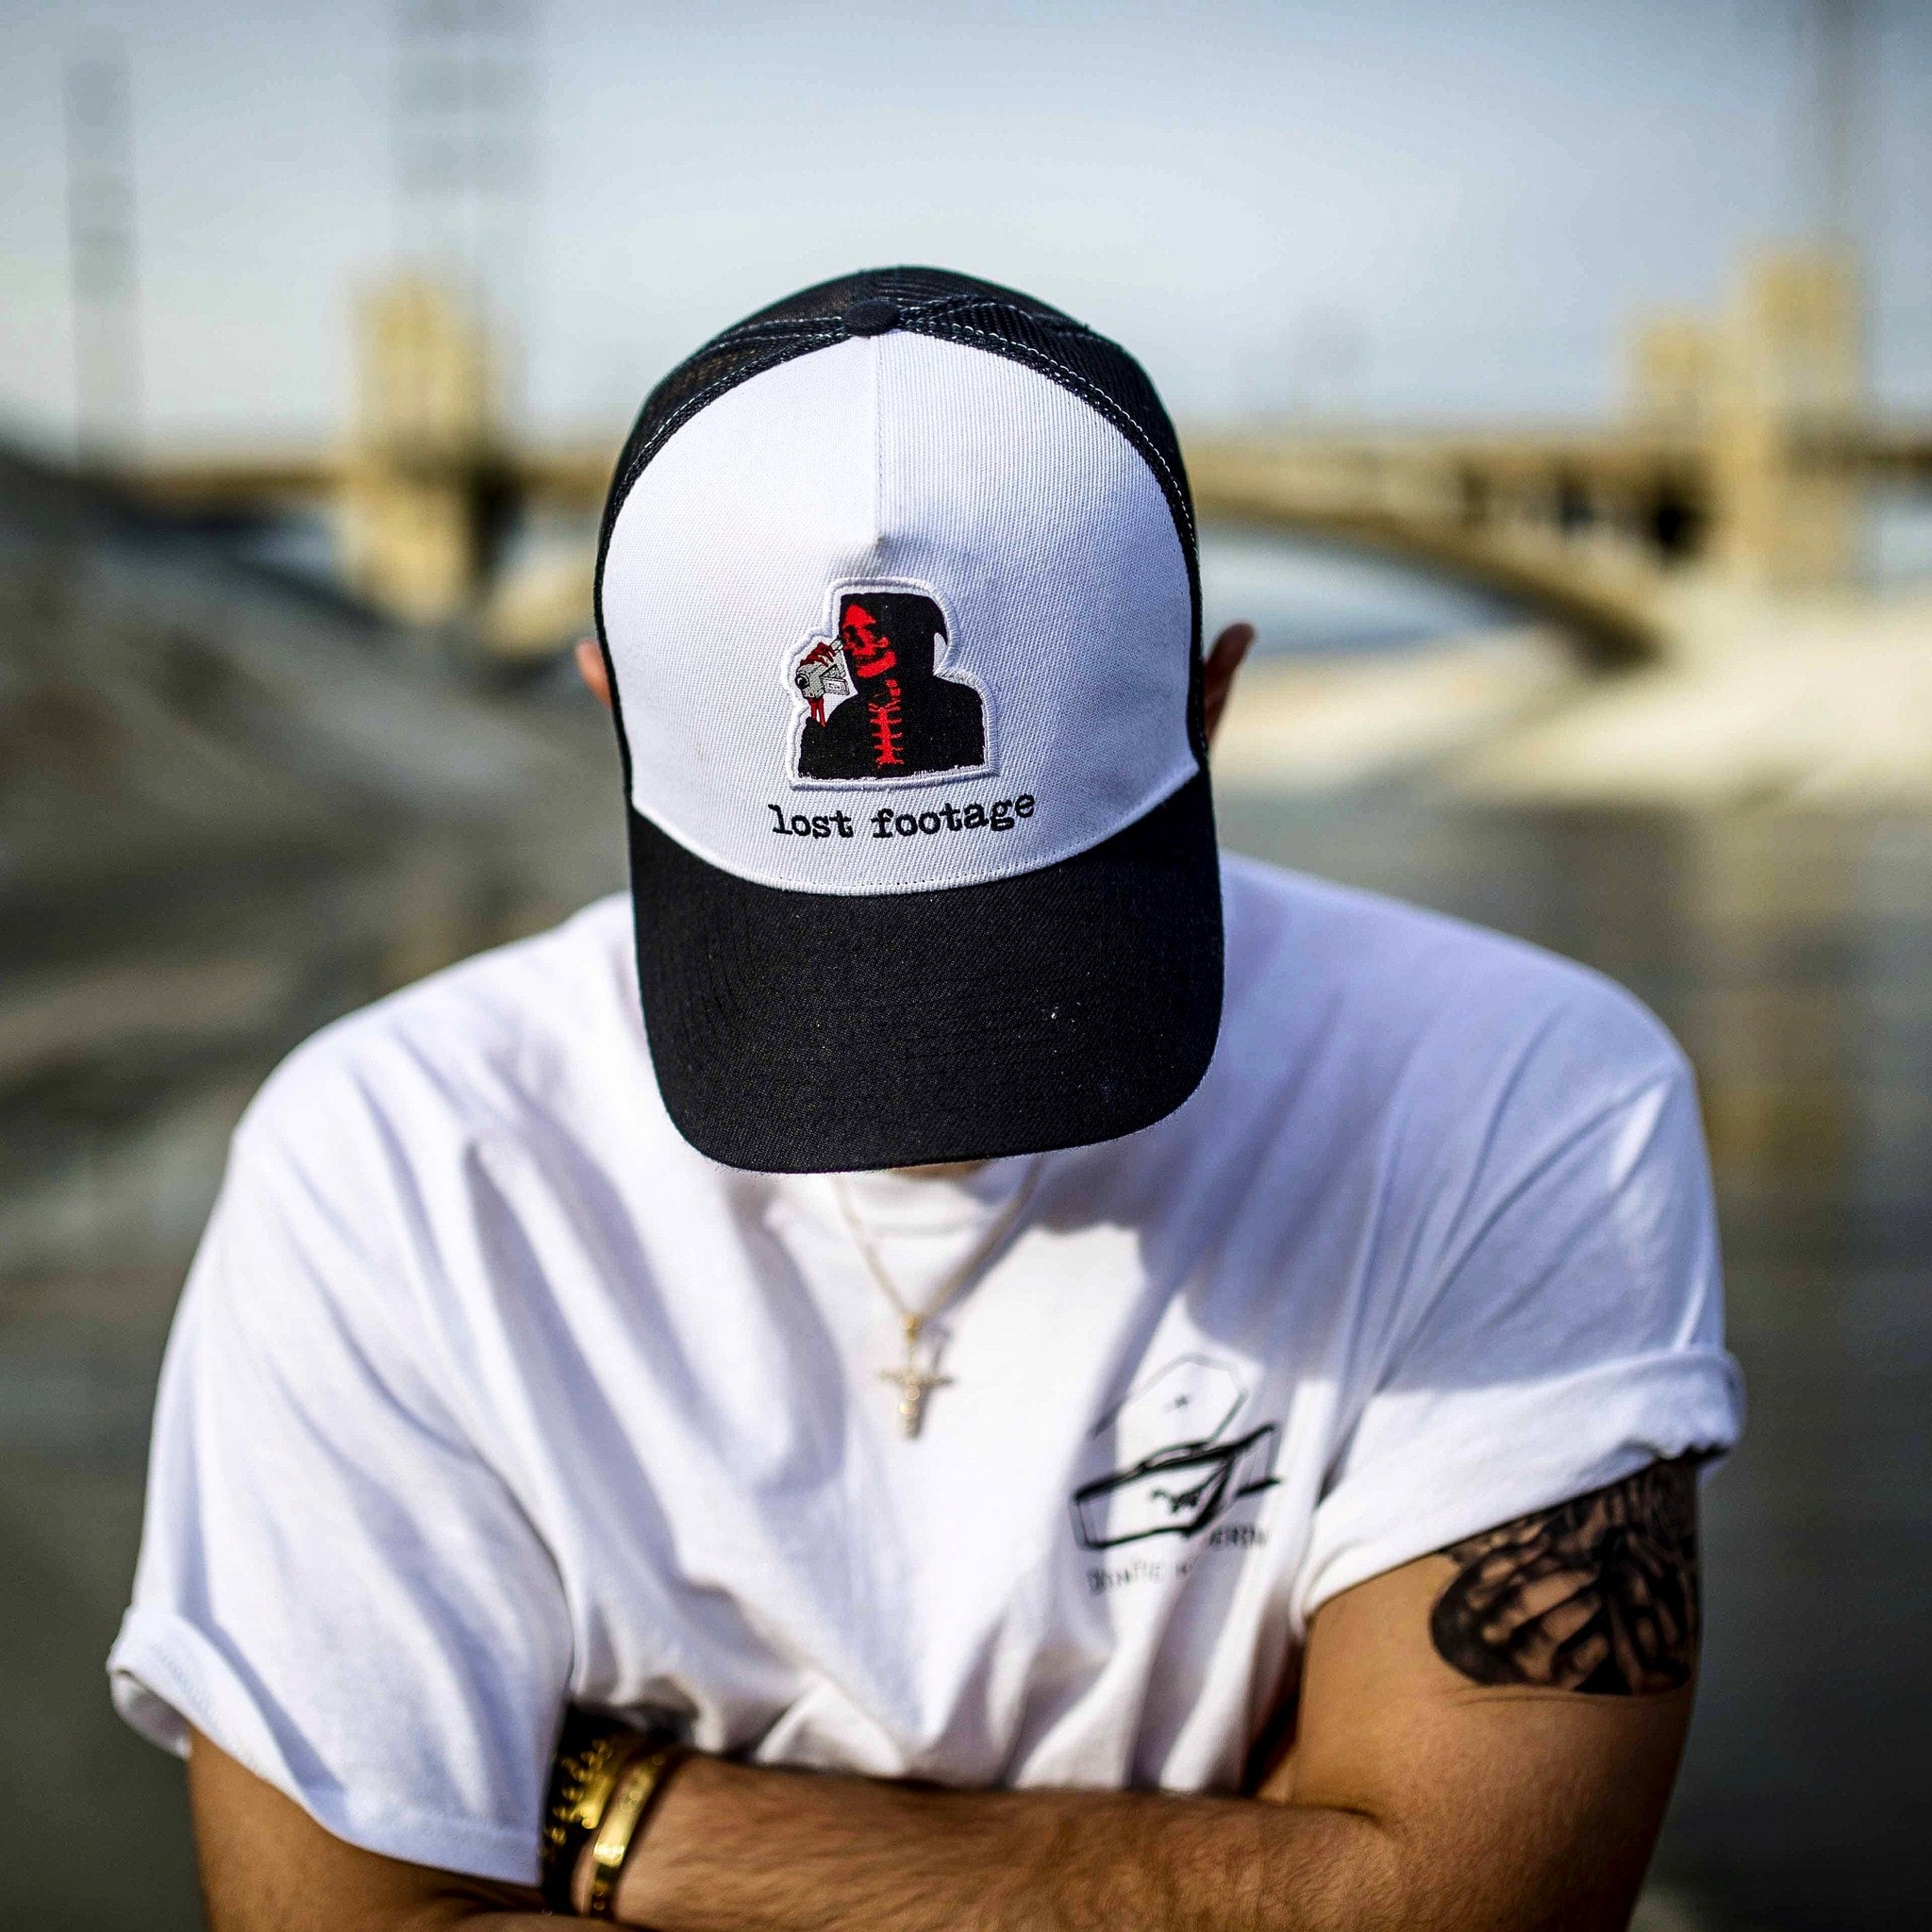 Lost Footage Trucker Snapback - The GLD Shop